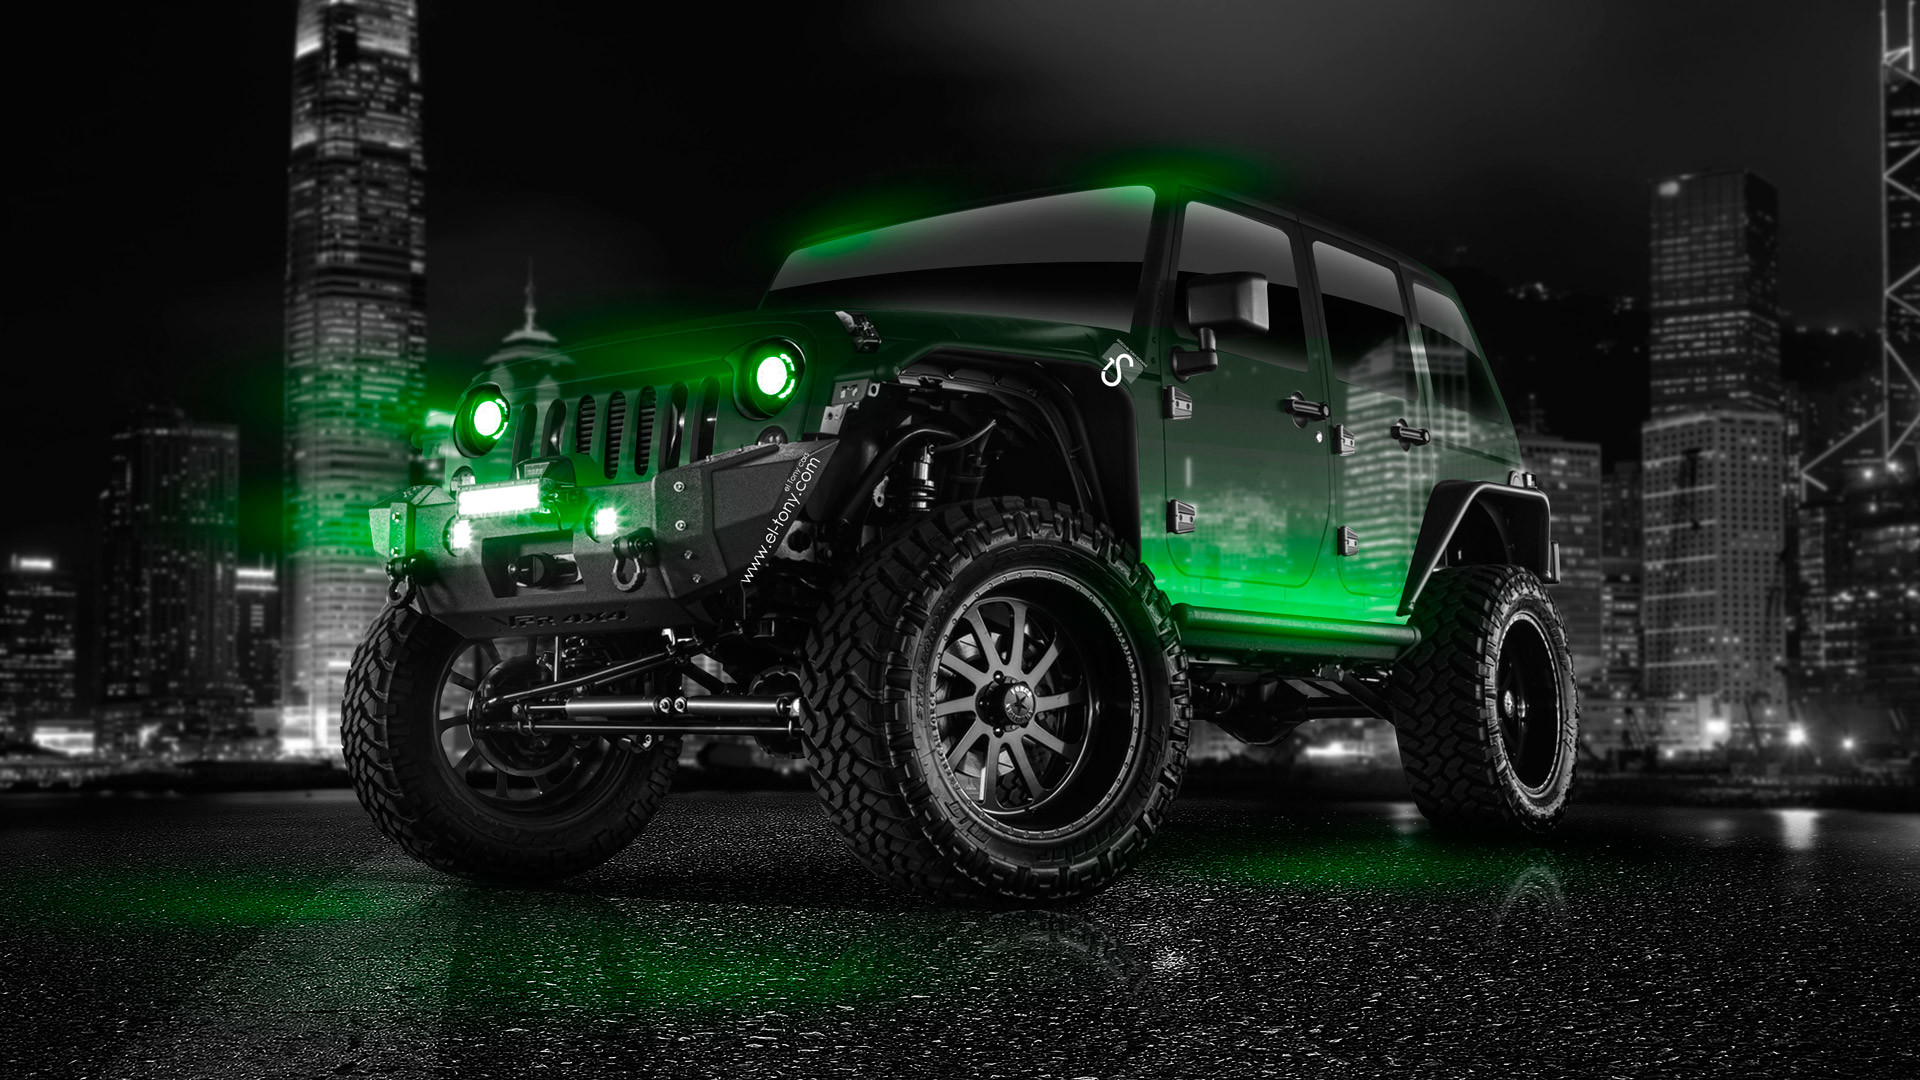 1920x1080 Preview Wallpaper Jeep Wrangler Car Suv